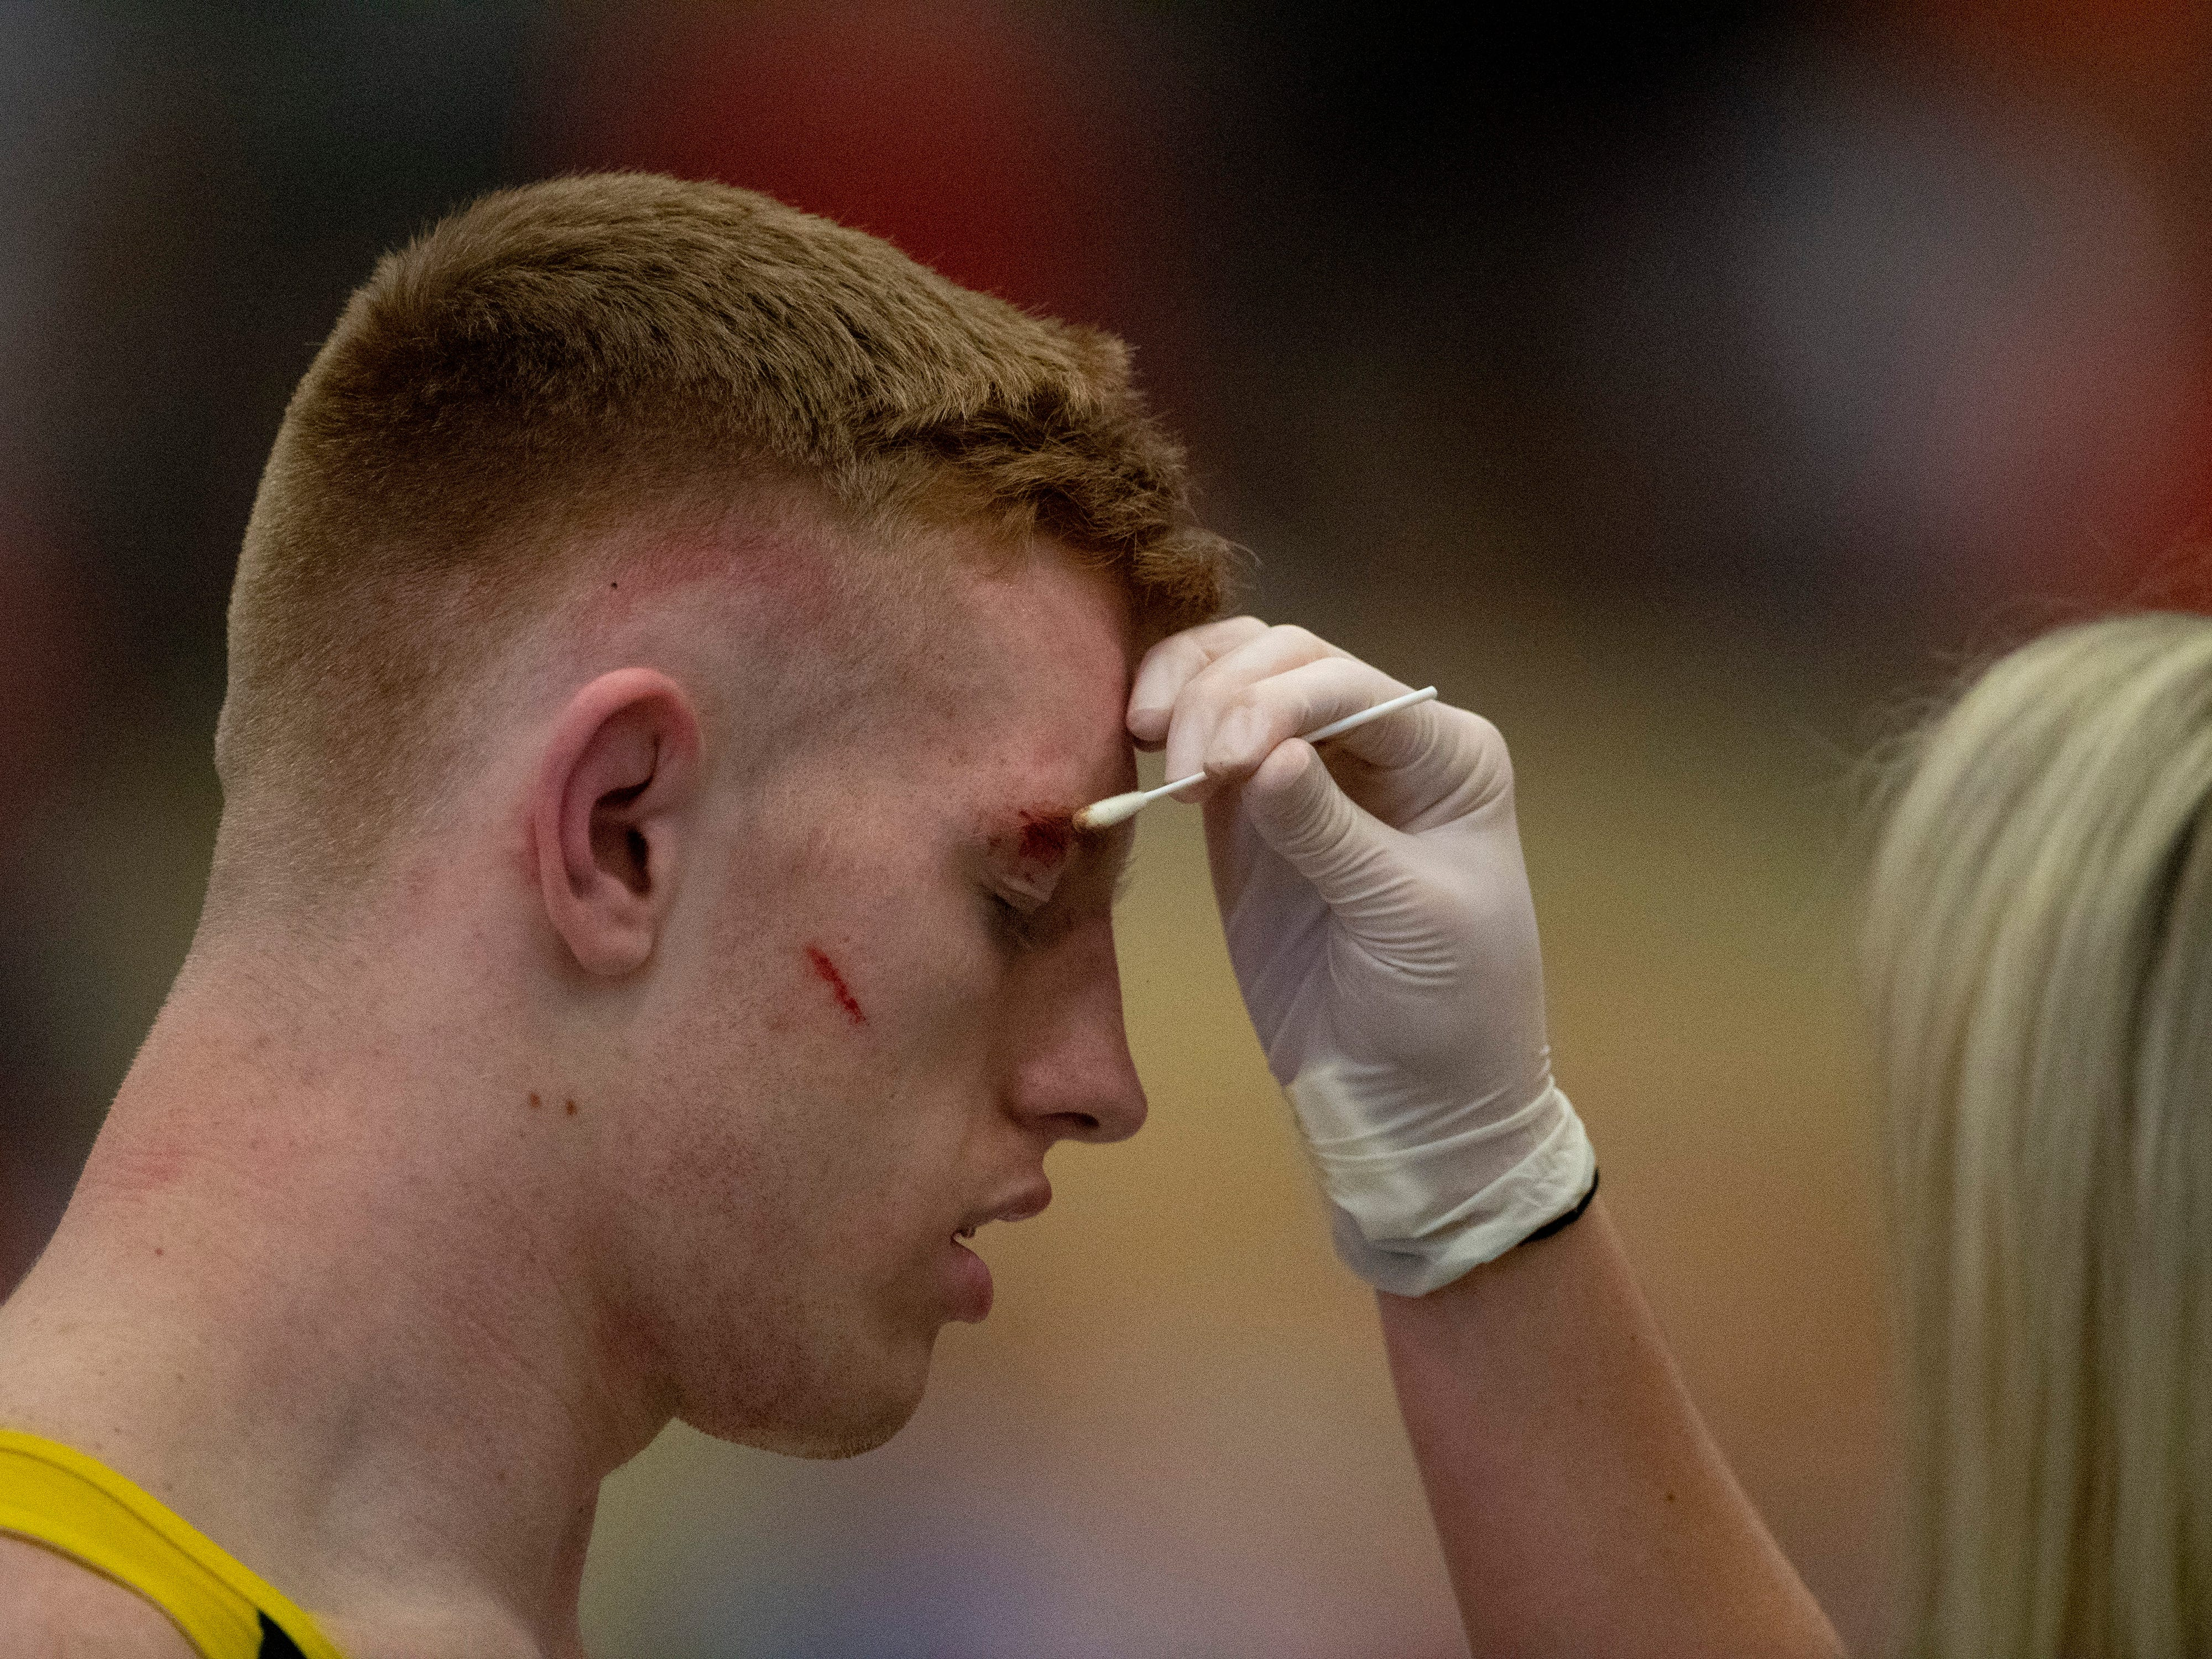 Johnson Central's Joe Jackson gets medical attention after a cut was opened up near his eyebrow while facing Union County's Micah Ervin in the 170-pound semifinals at the KHSAA State Wrestling Championships at the Alltech Arena in Lexington, Ky., Saturday afternoon. The match continued and Ervin came out on top in the match to advance to the finals.